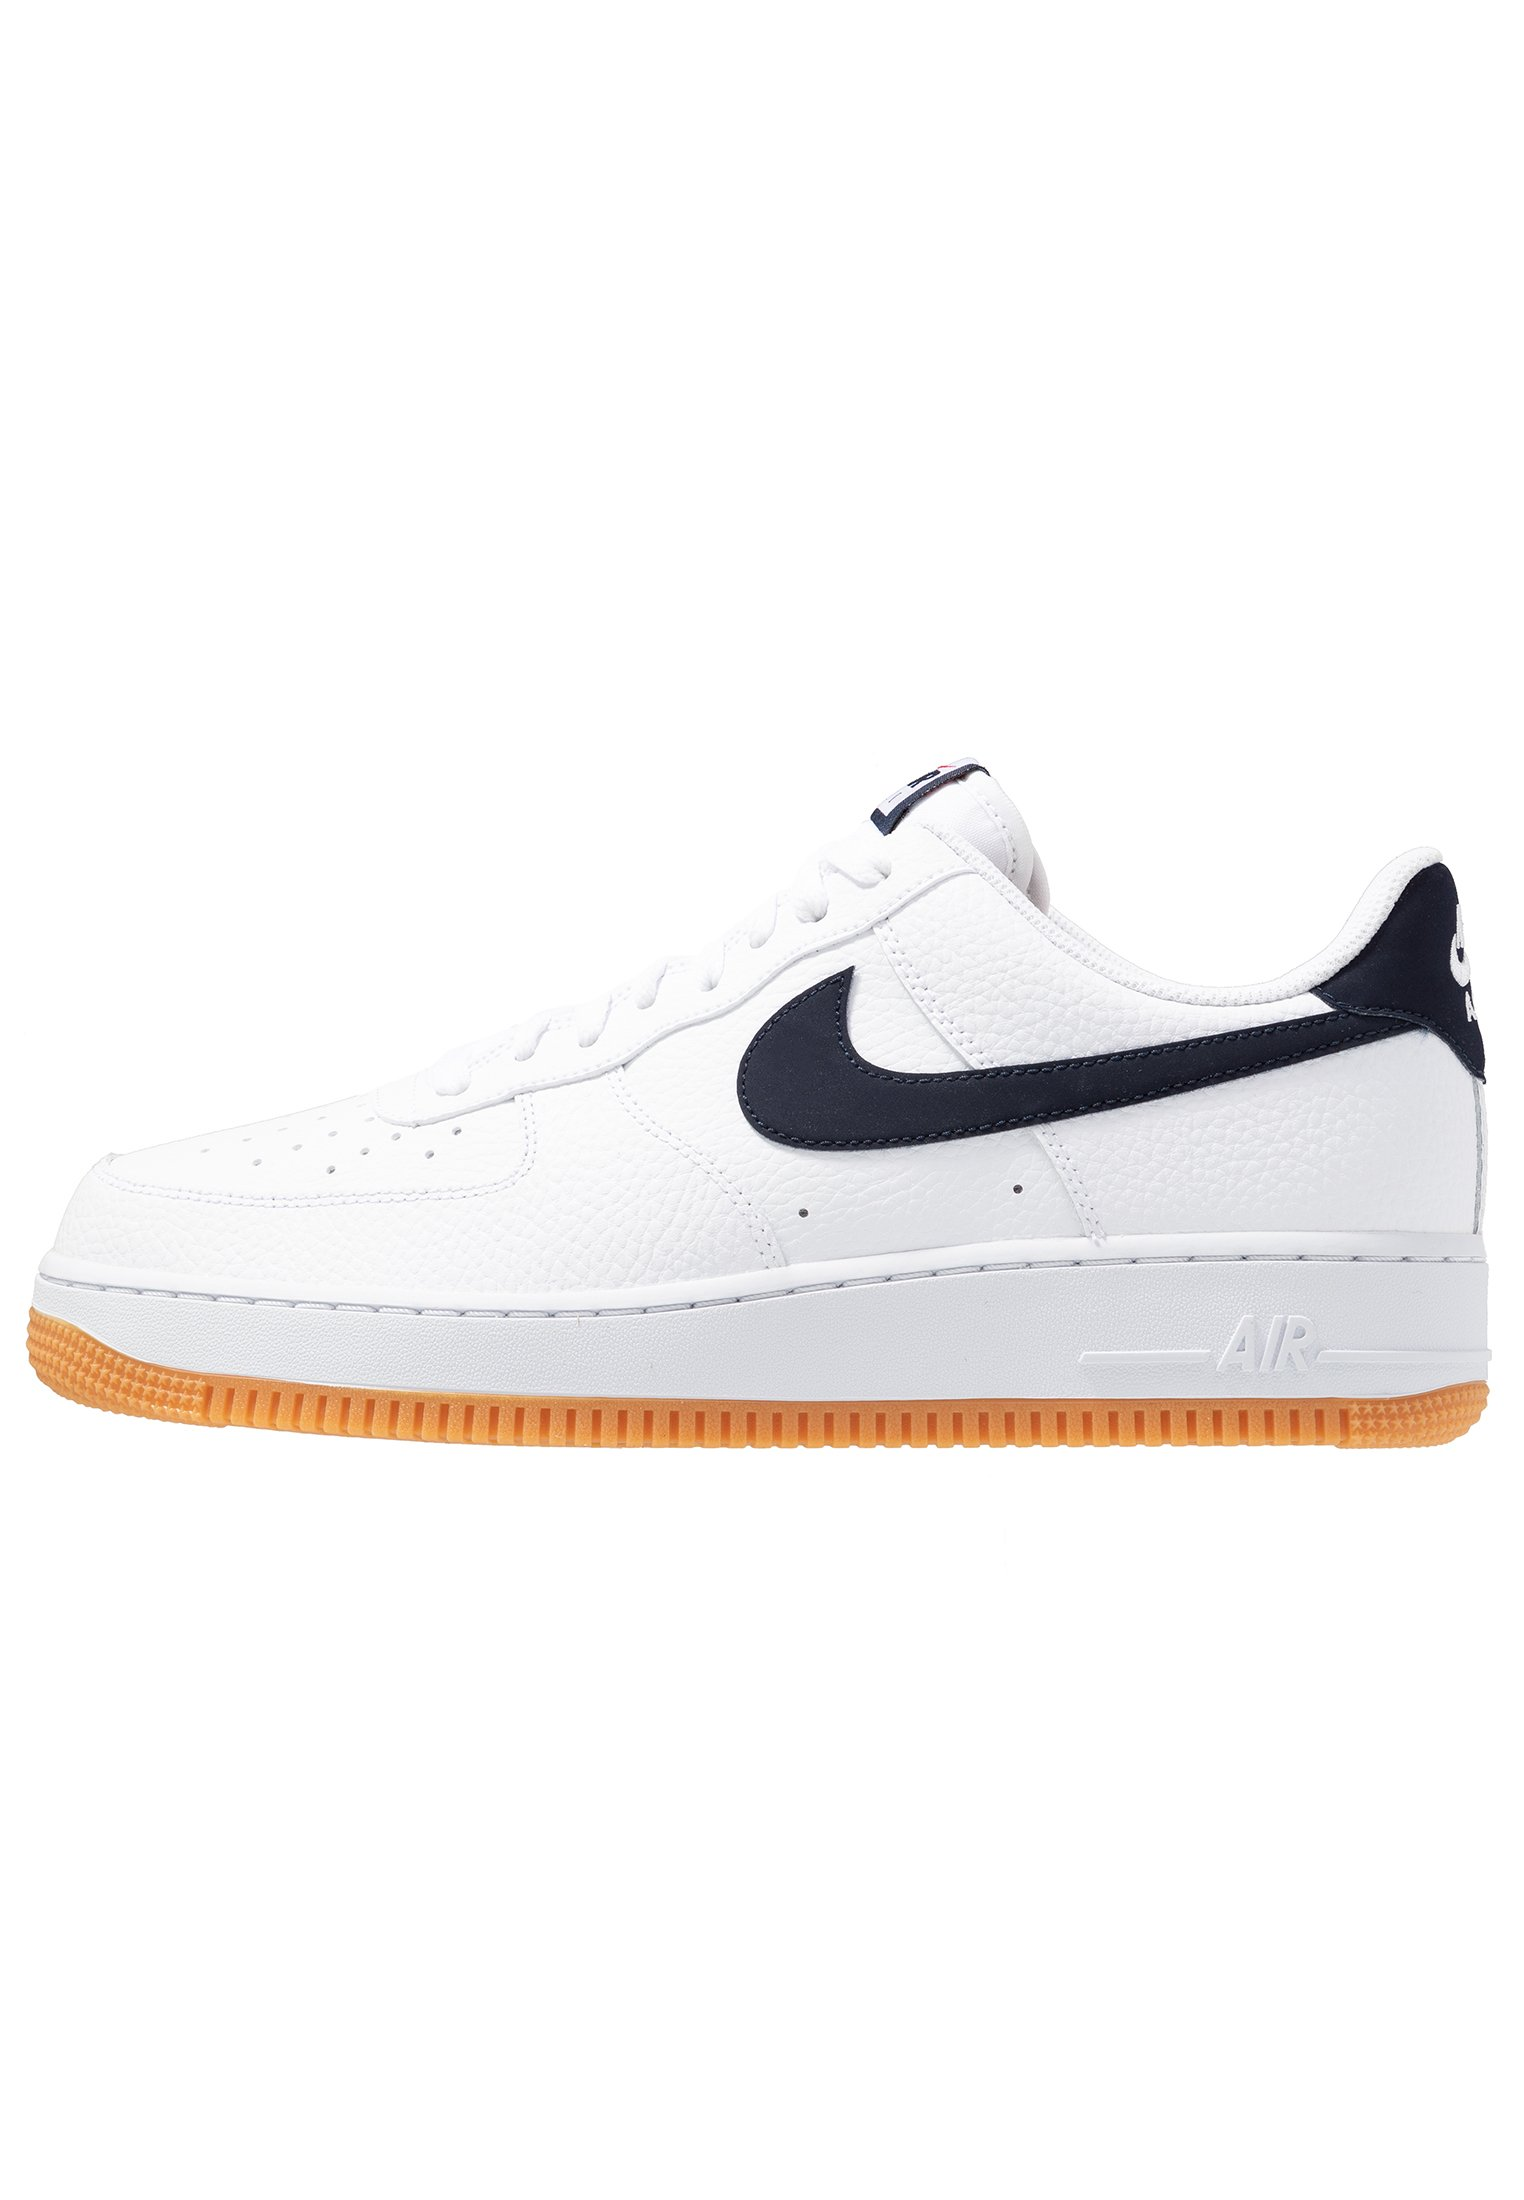 AIR FORCE 1 '07 Sneakers basse whiteobsidianuniversity redmedium brown